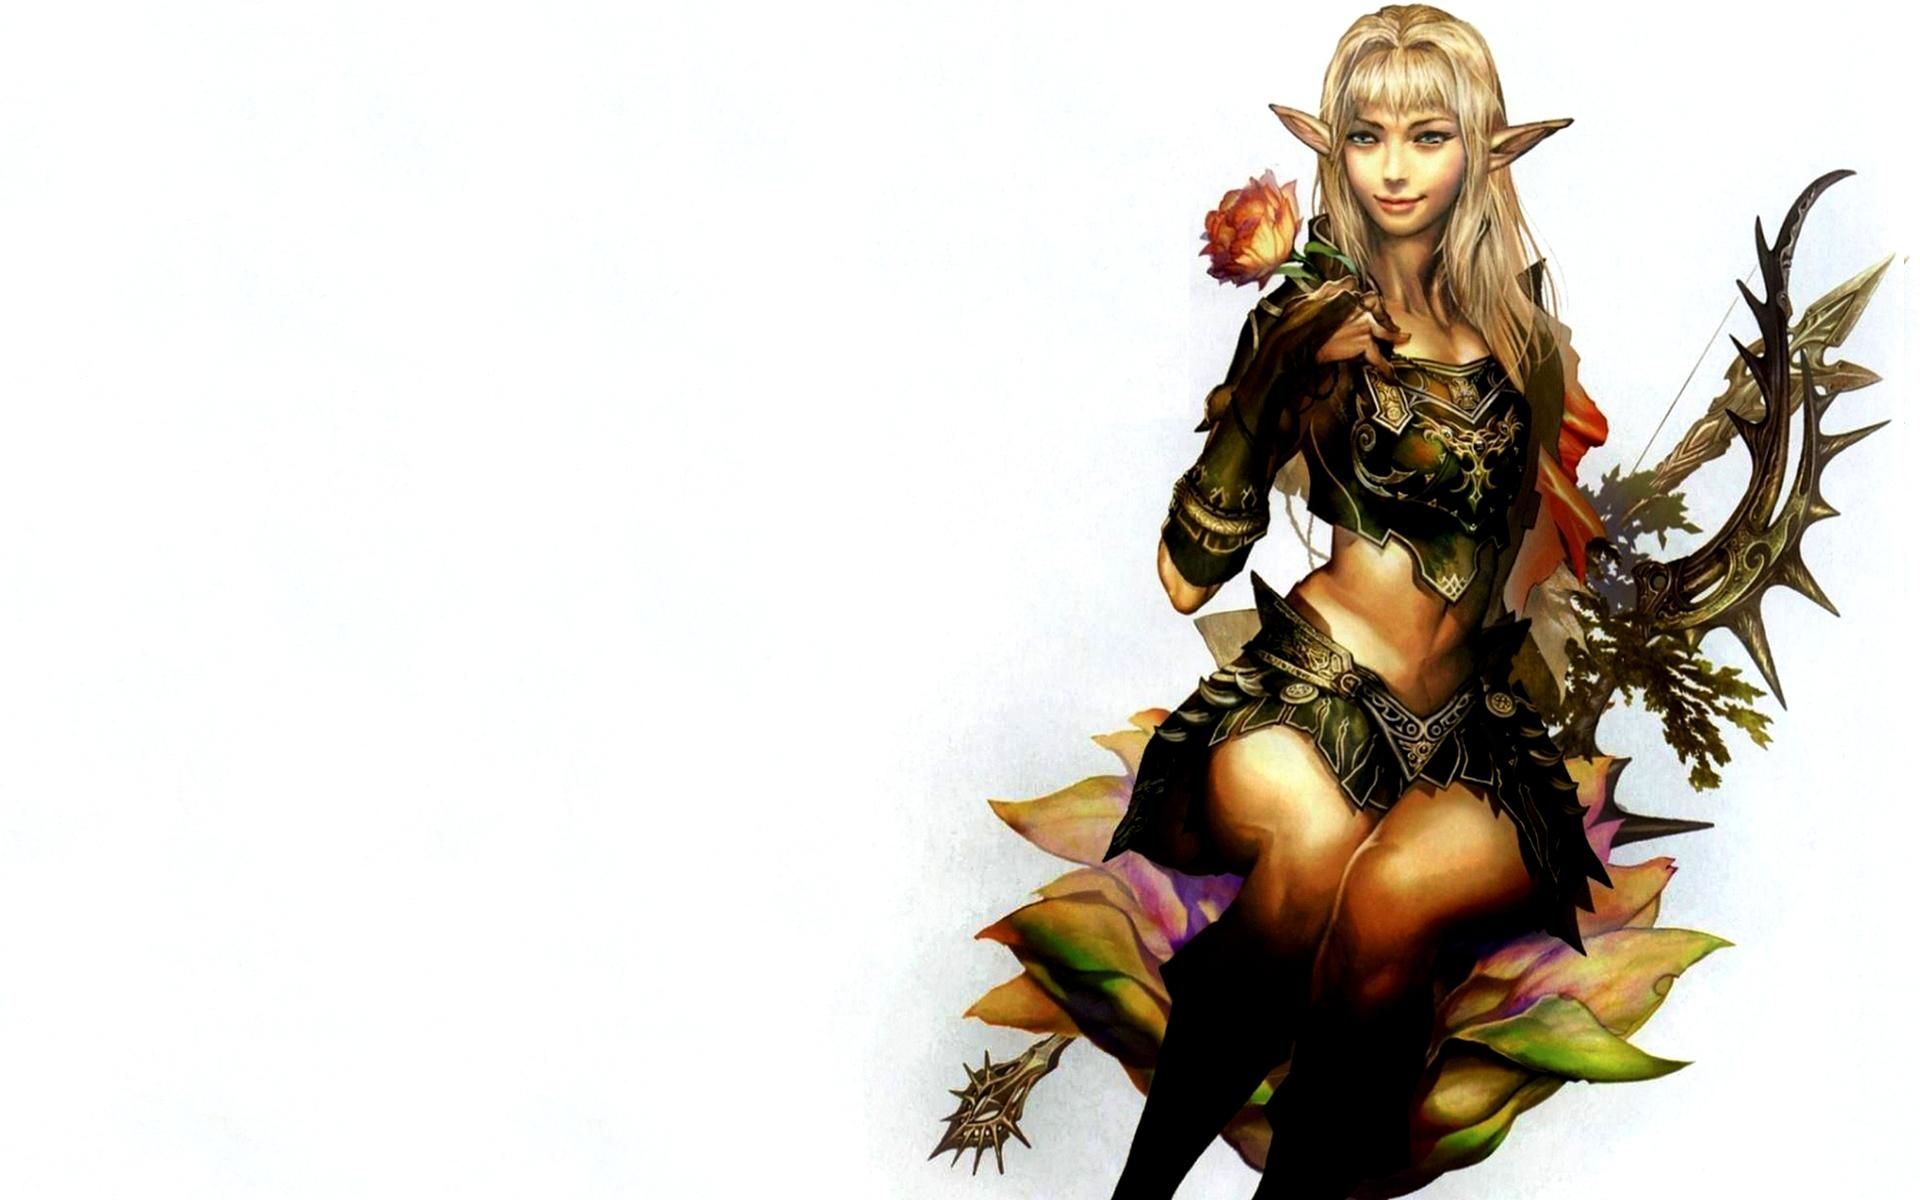 Archer Warrior Elves Fantasy Art Wallpapers Hd: HD Elf Archer Girl Wallpaper